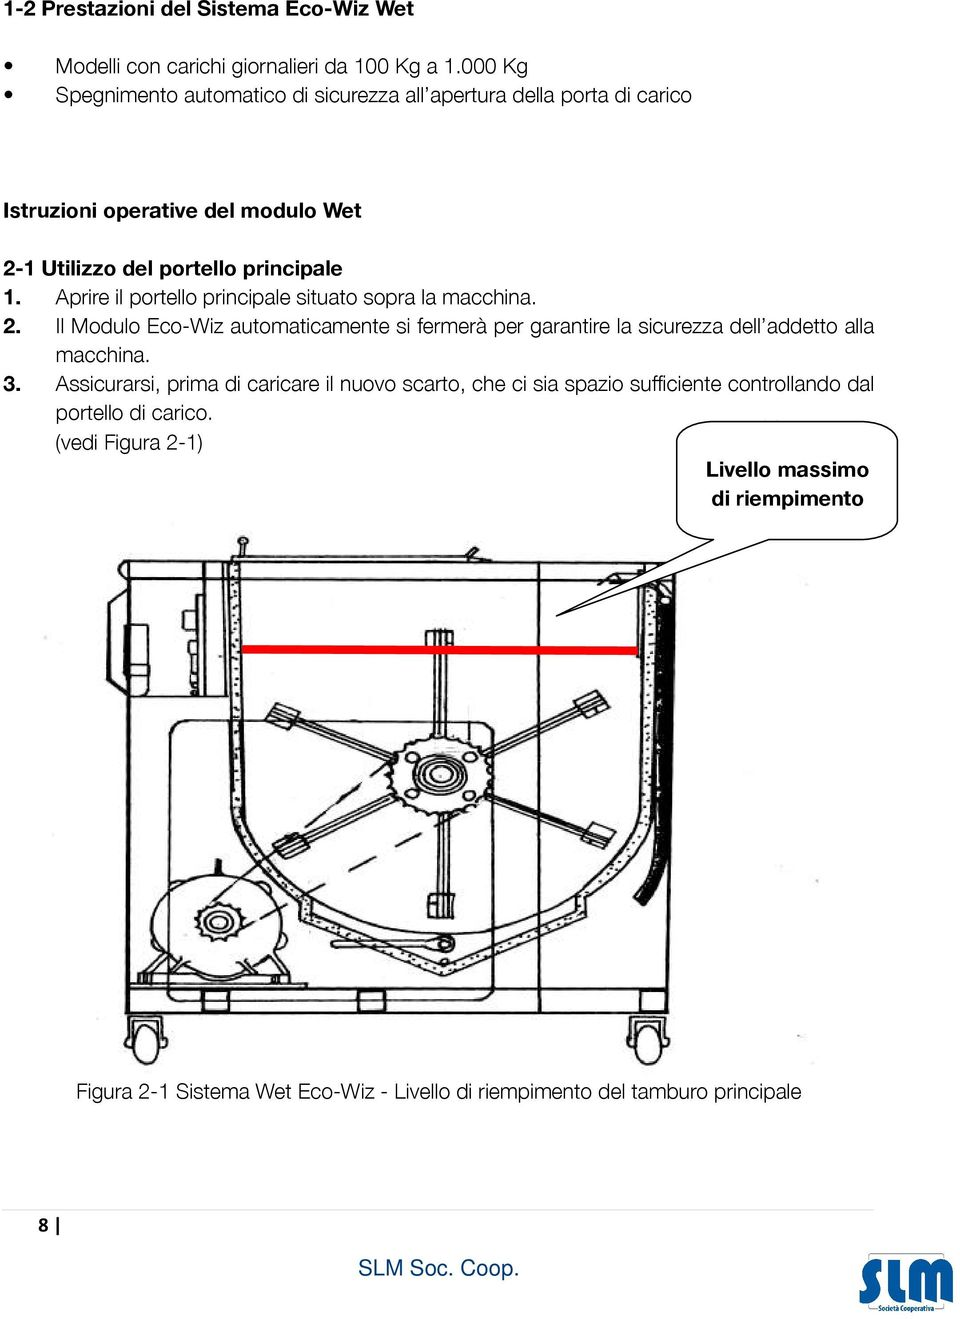 ensuring safe operation OPERATING INSTRUCTIONS Wet Module Istruzioni operative del modulo Wet 2-1 Using the Main Hatch 2-1 Utilizzo del portello principale 1.